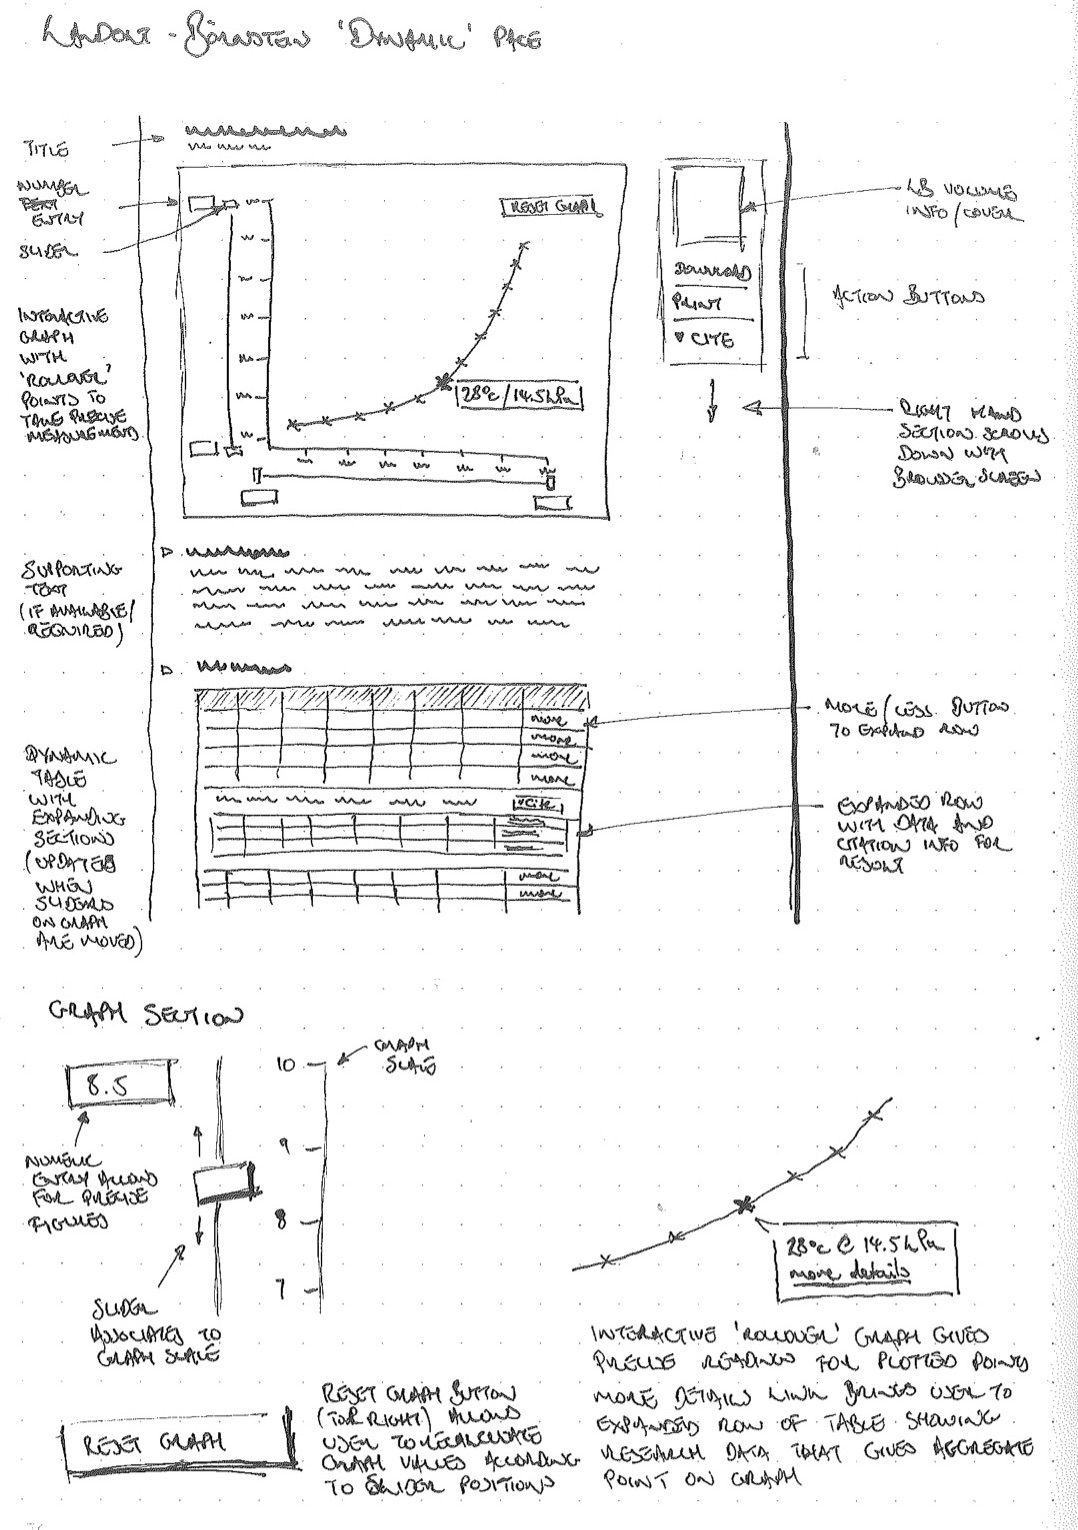 Sketch planning page layout for the digitised version of Landolt-Bornstein pages in Springer Materials